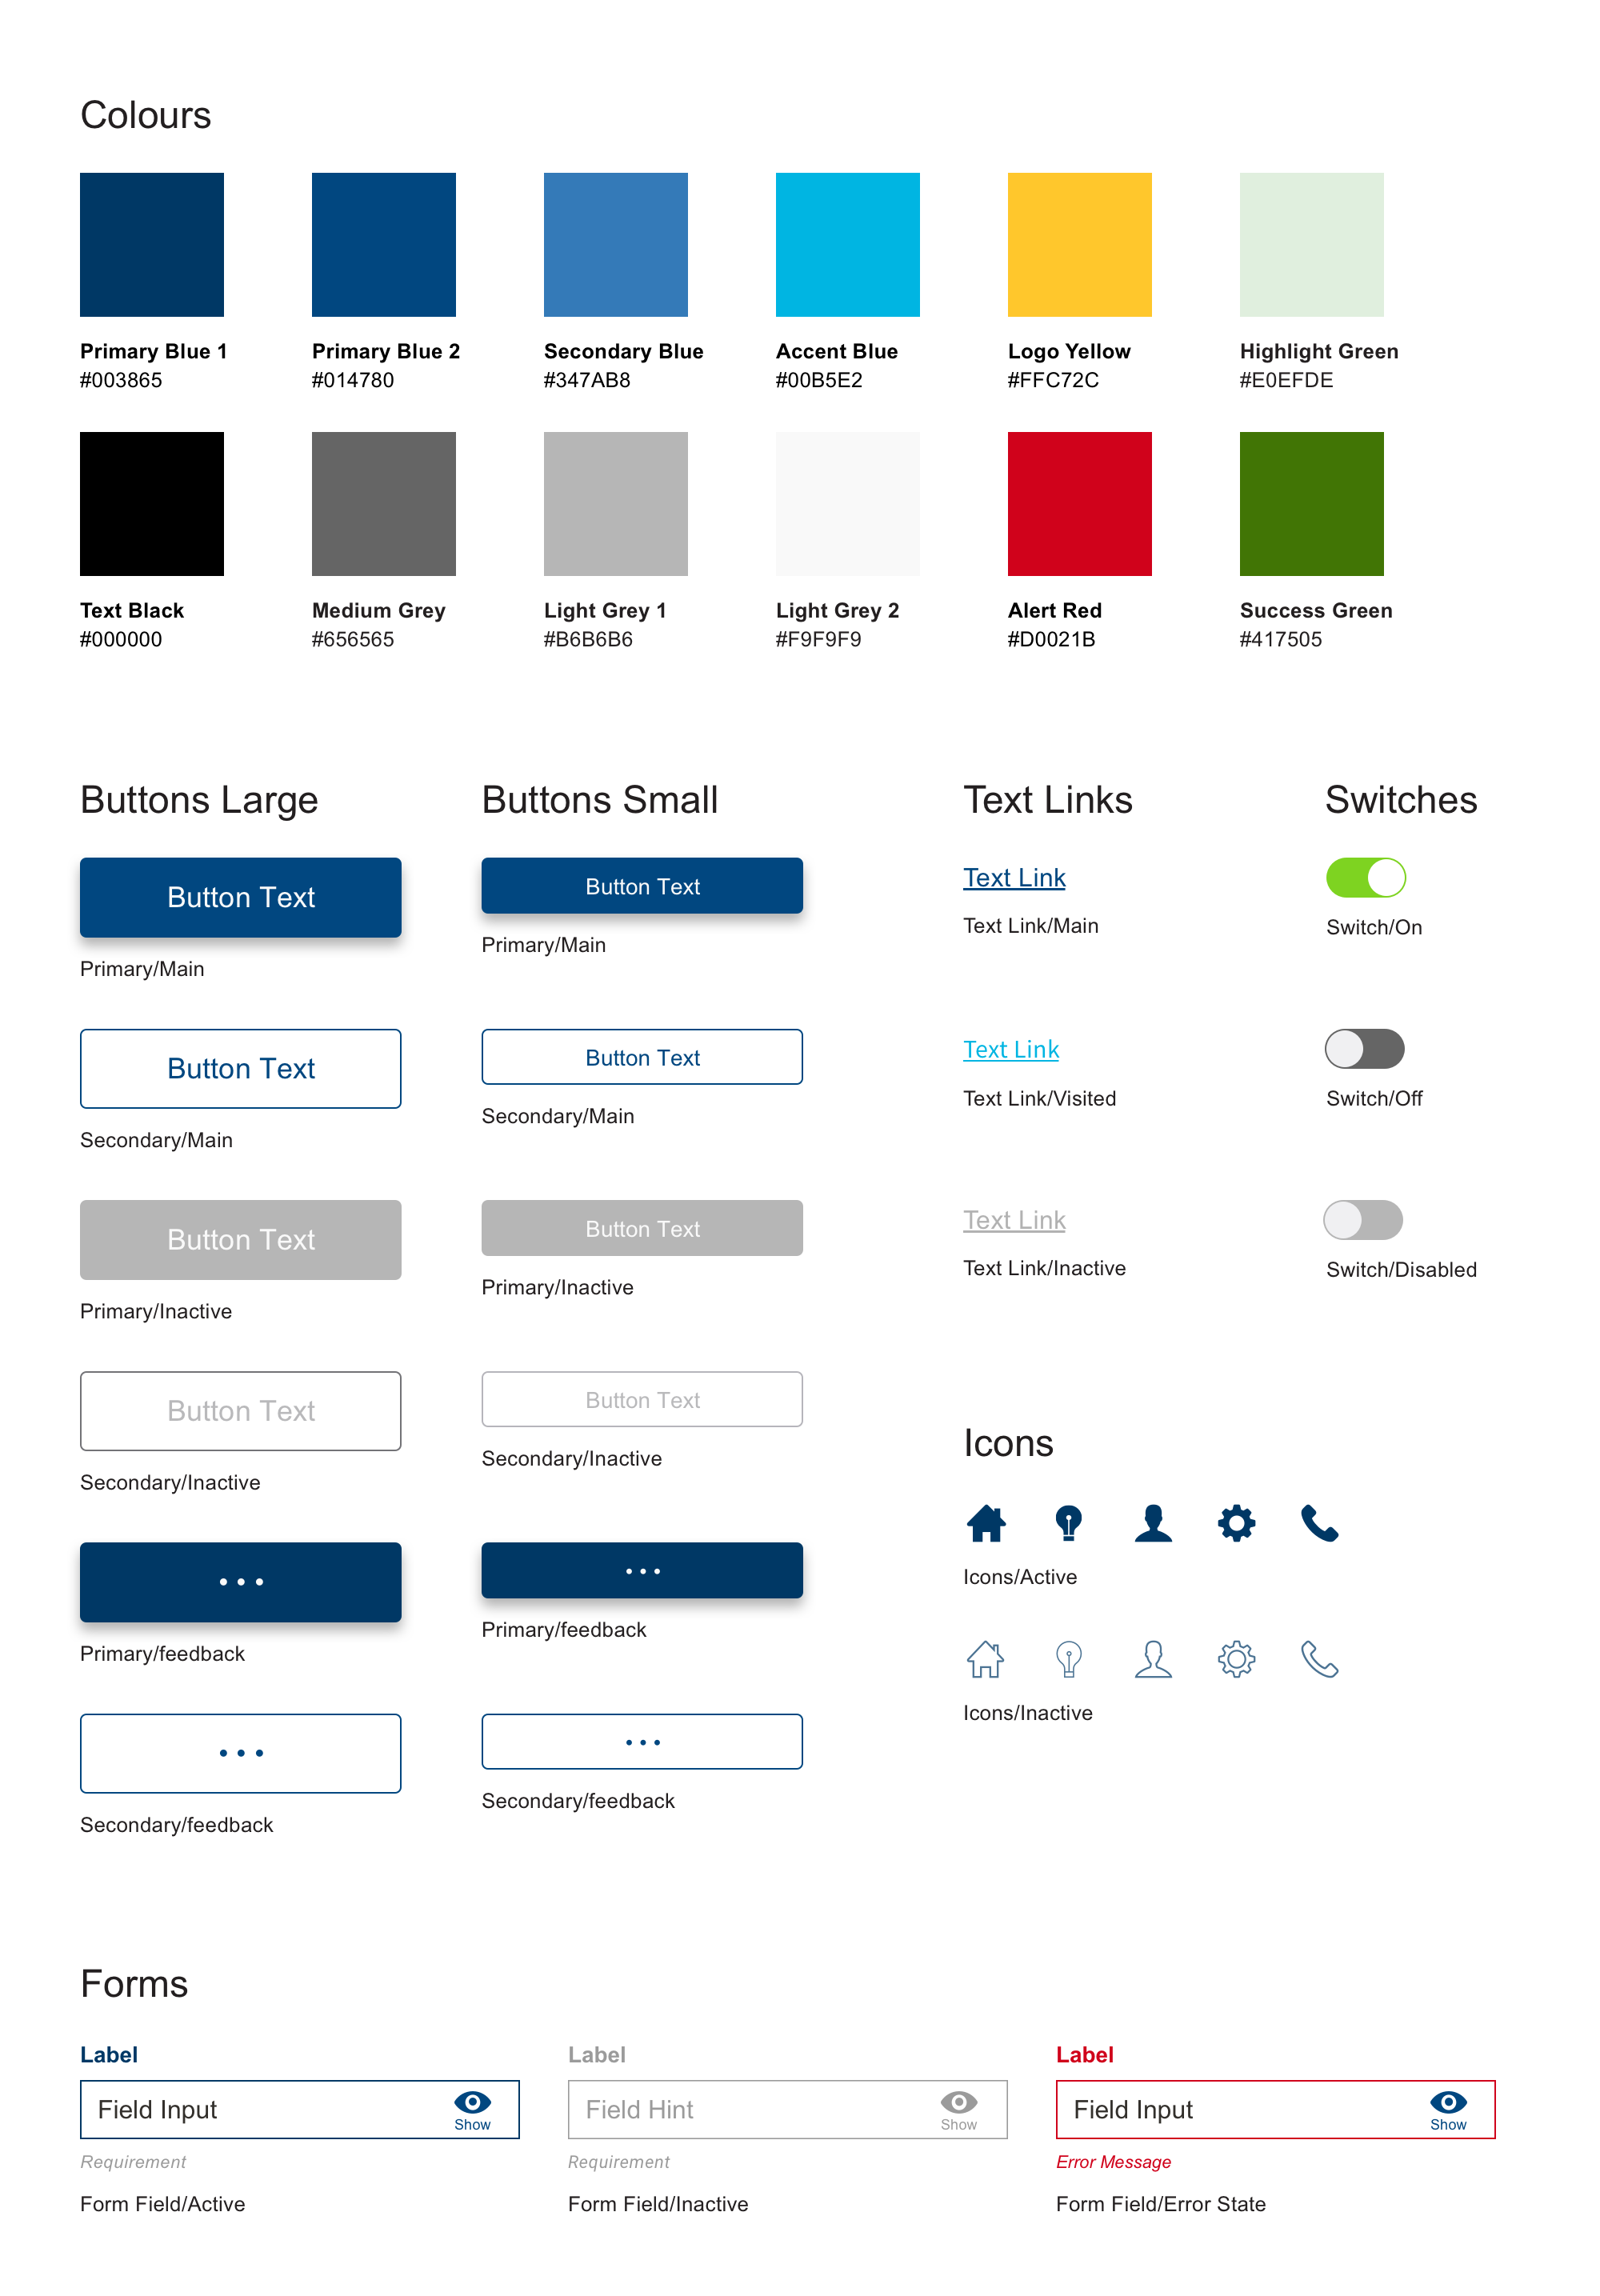 Style guide with twelve colour options as well as button, link, switch, form and icon options.